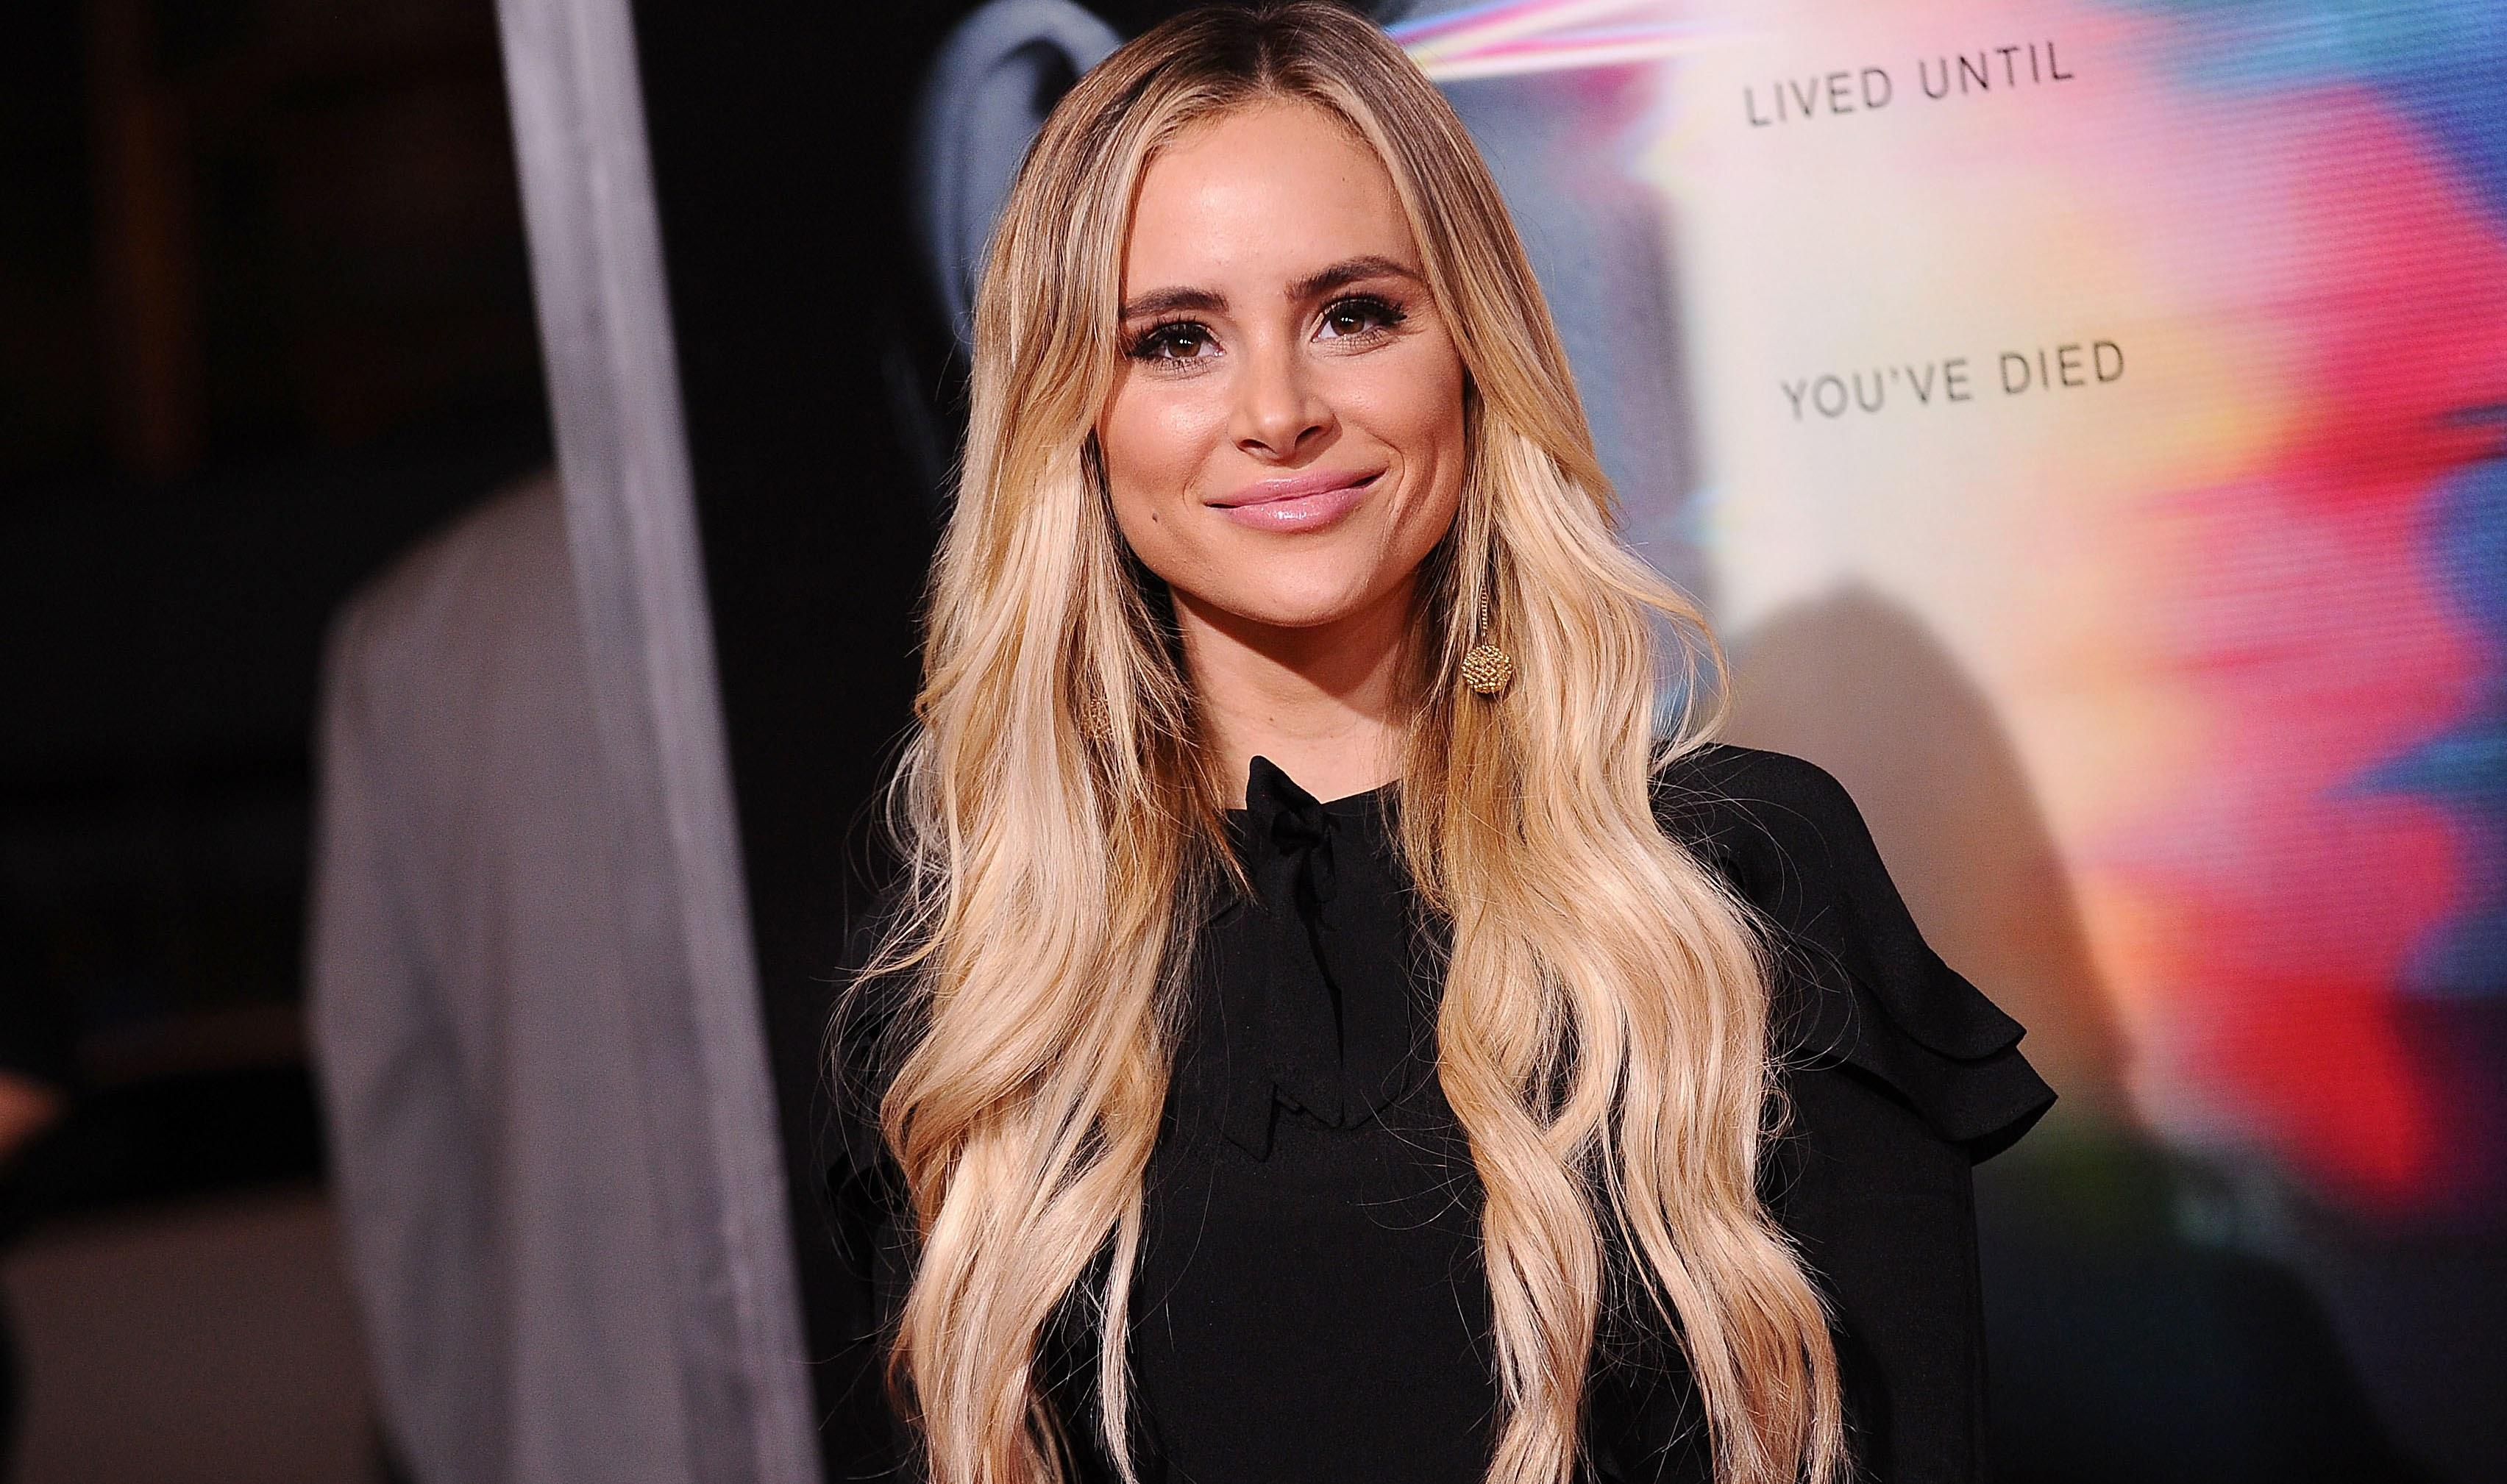 Amanda Stanton Says She's 'Embarrassed and Ashamed' Following Arrest